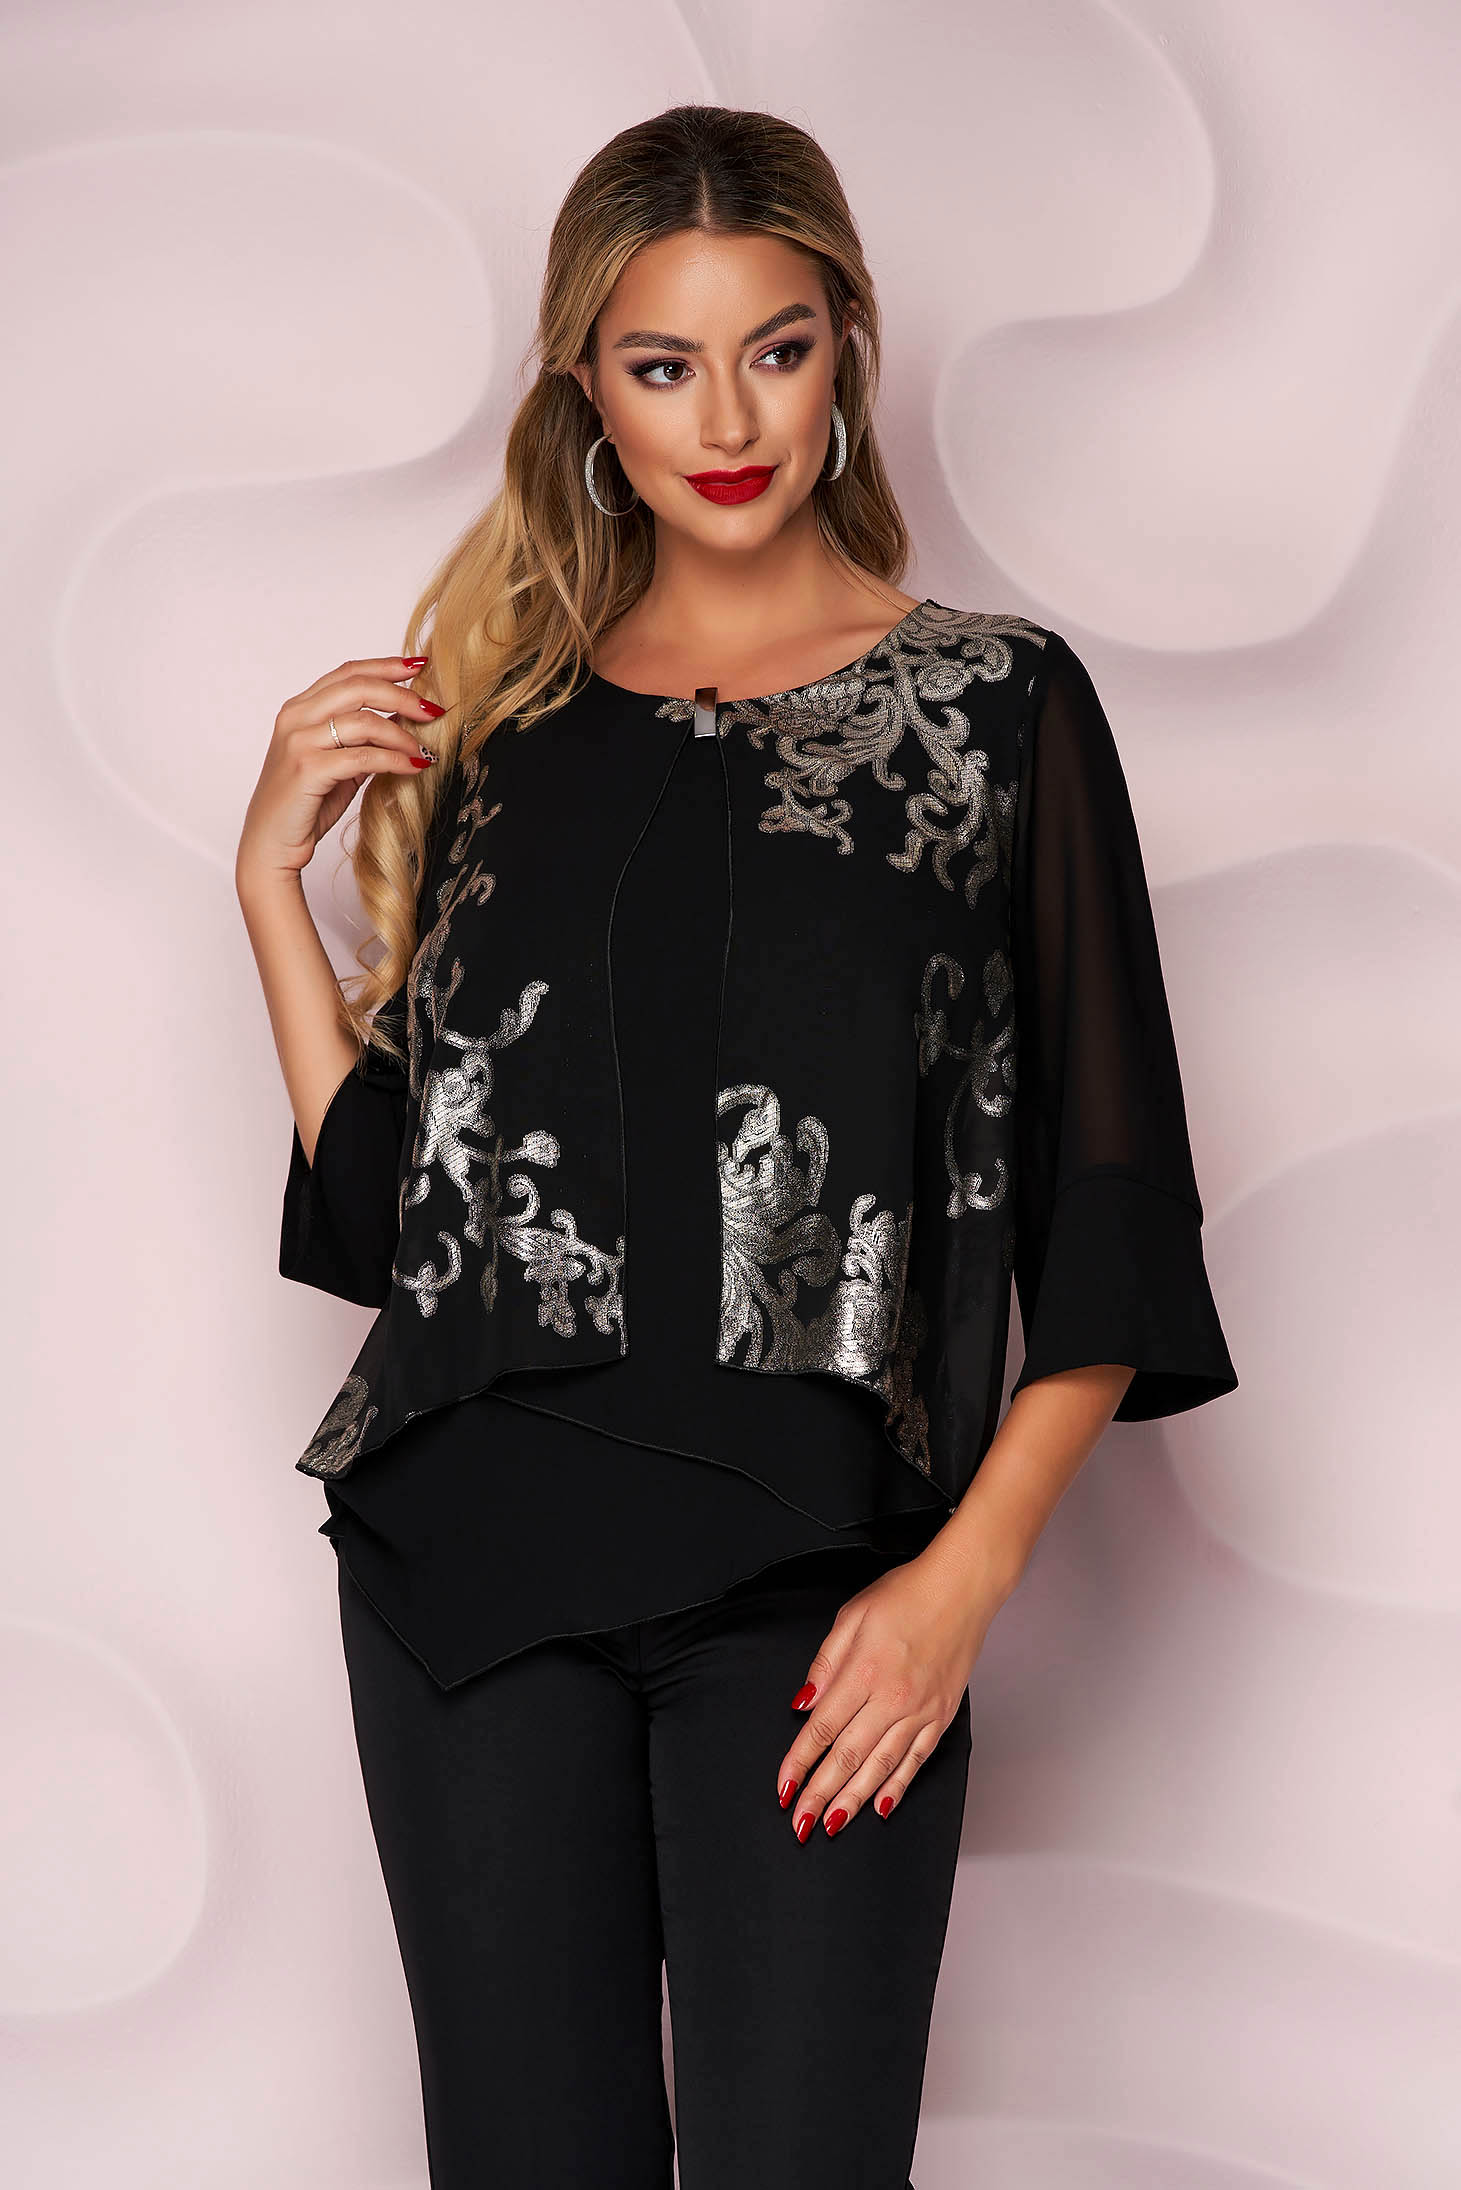 Women`s blouse office asymmetrical loose fit thin fabric accessorized with breastpin